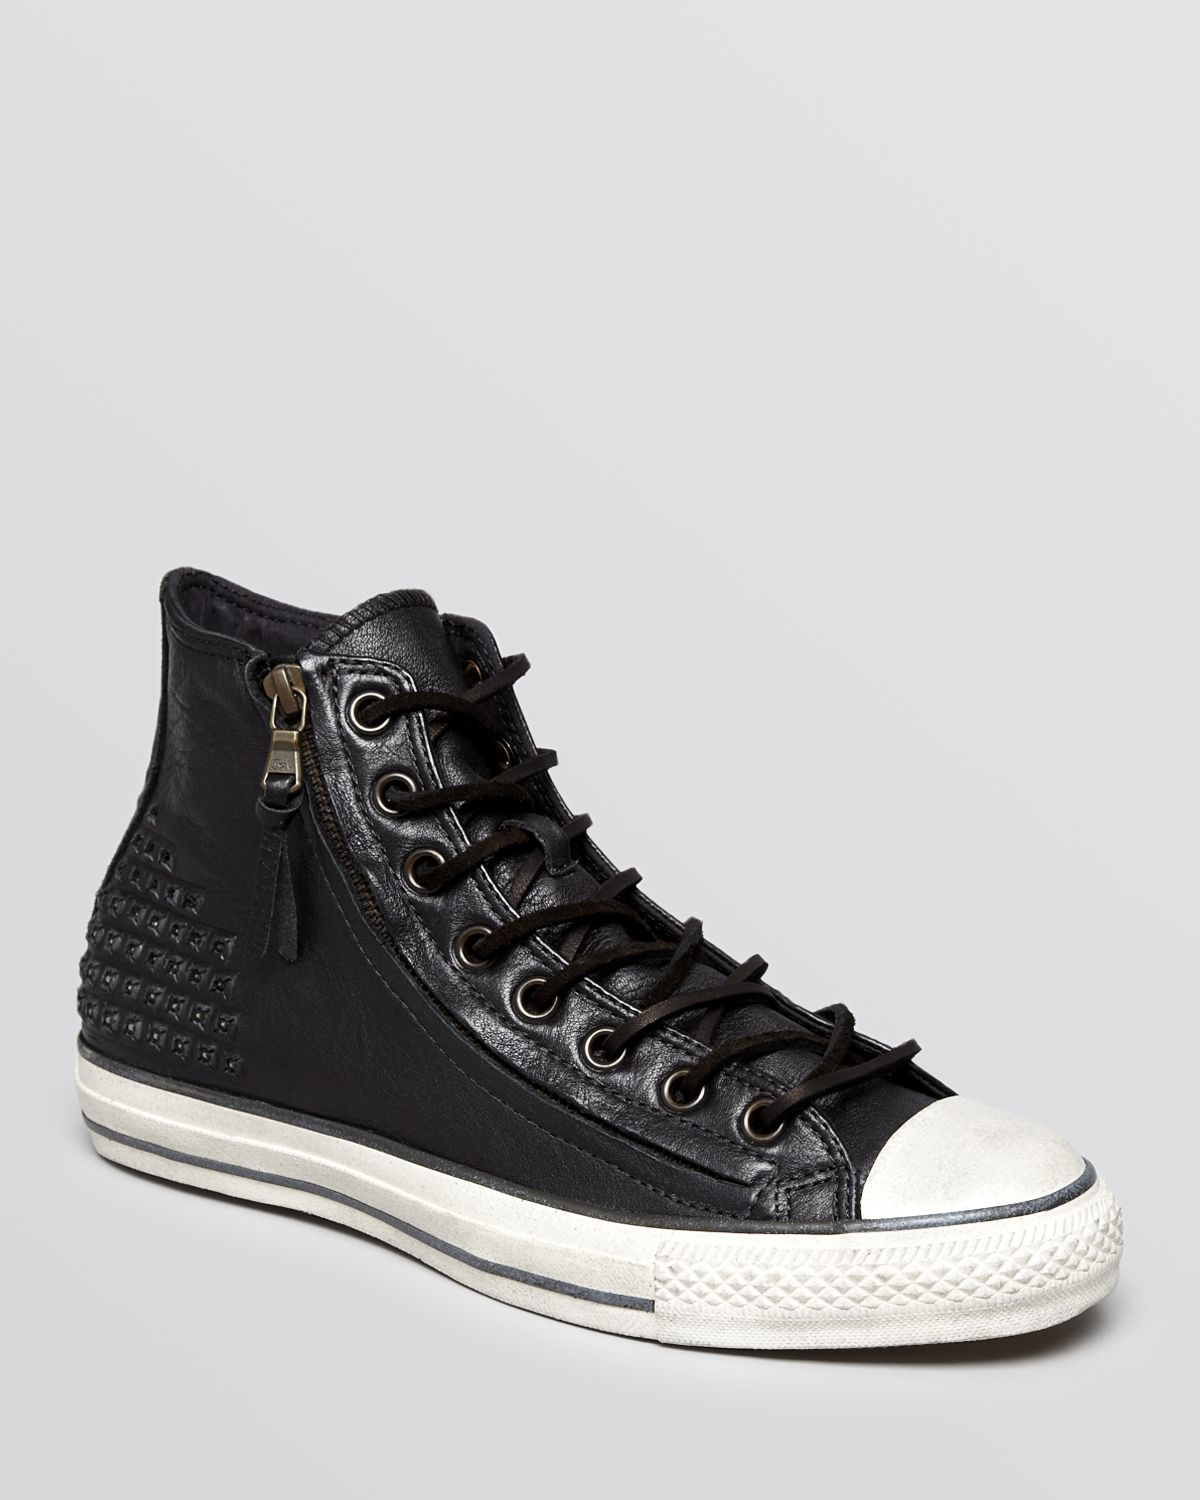 73972231764b Lyst - Converse Chuck Taylor All Star Double Zip High Top Sneakers ...